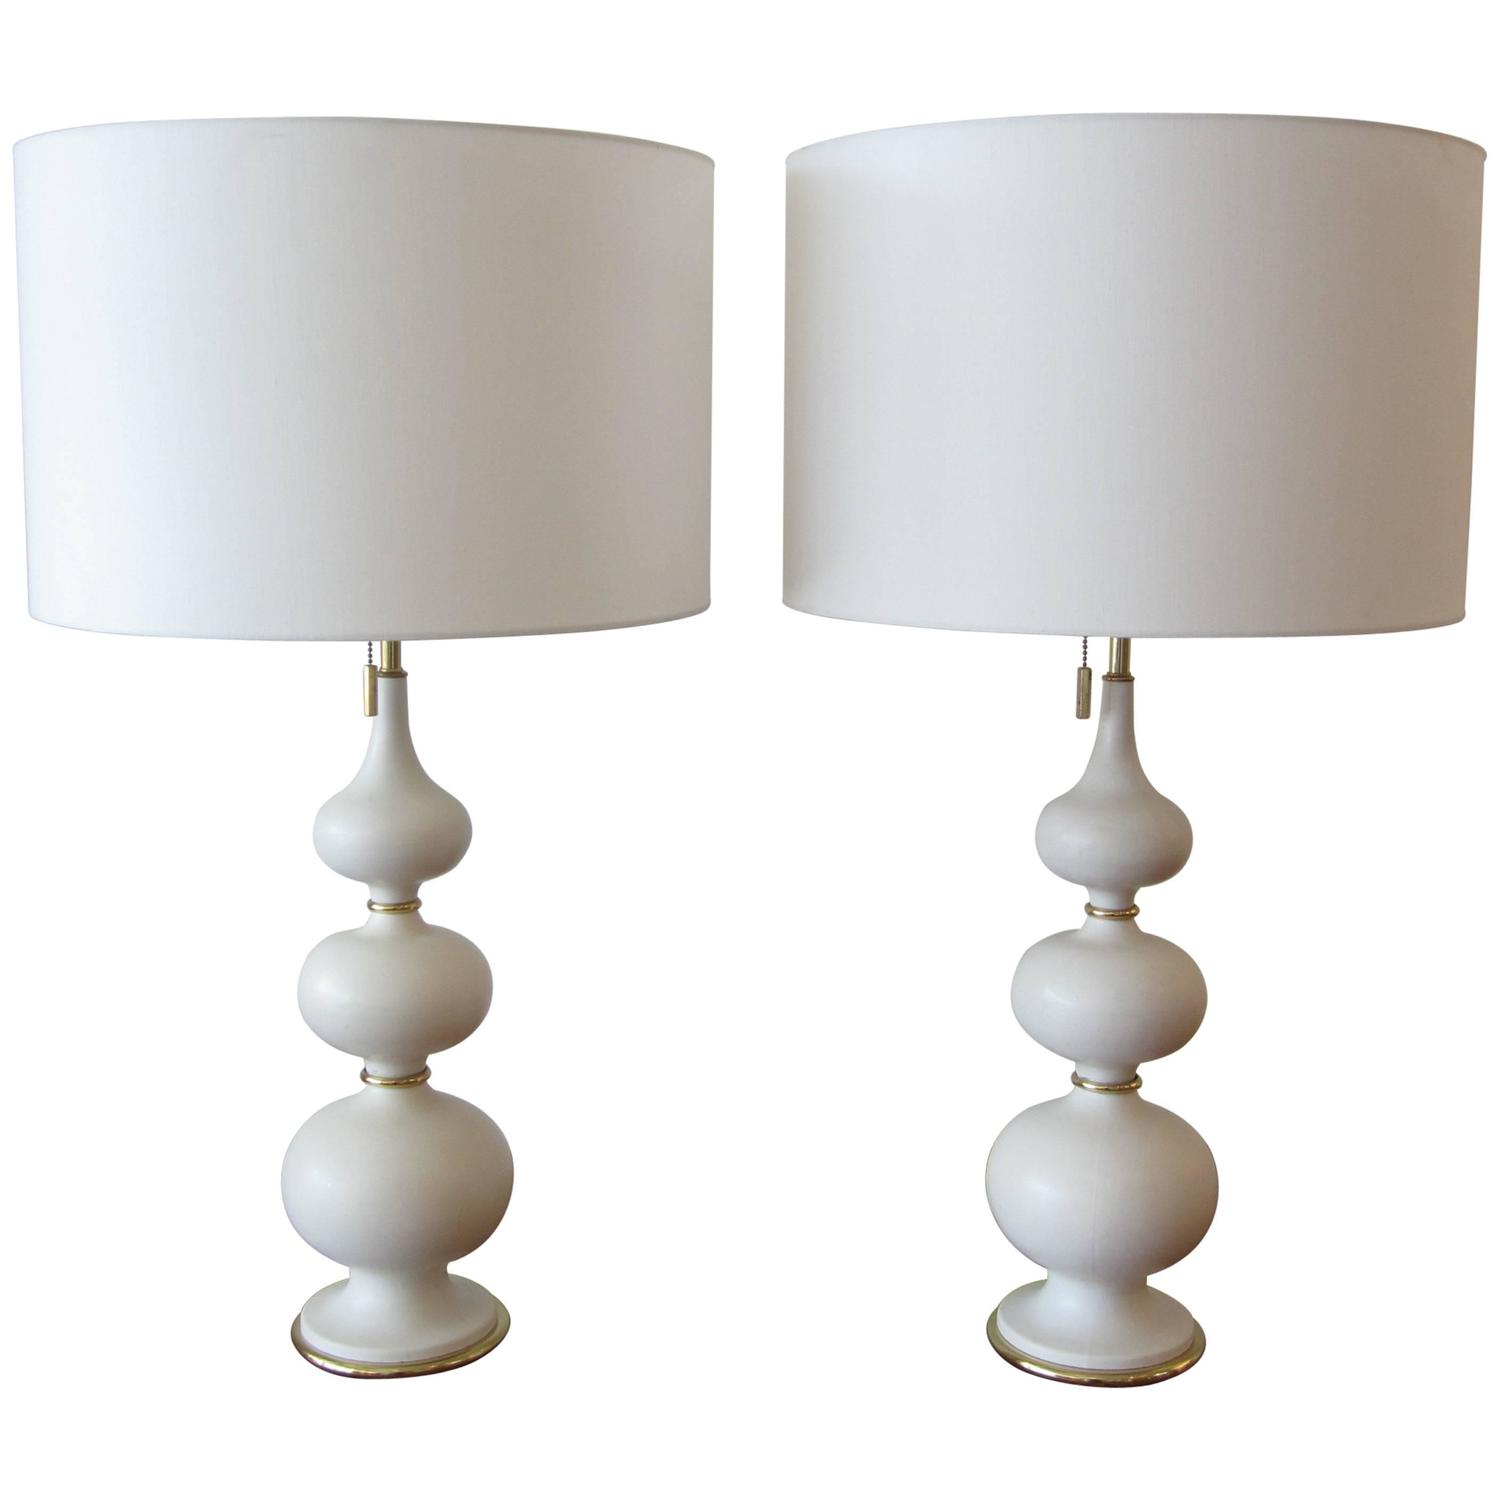 thurston matte porcelain stacked gourd lamps for sale at 1stdibs. Black Bedroom Furniture Sets. Home Design Ideas